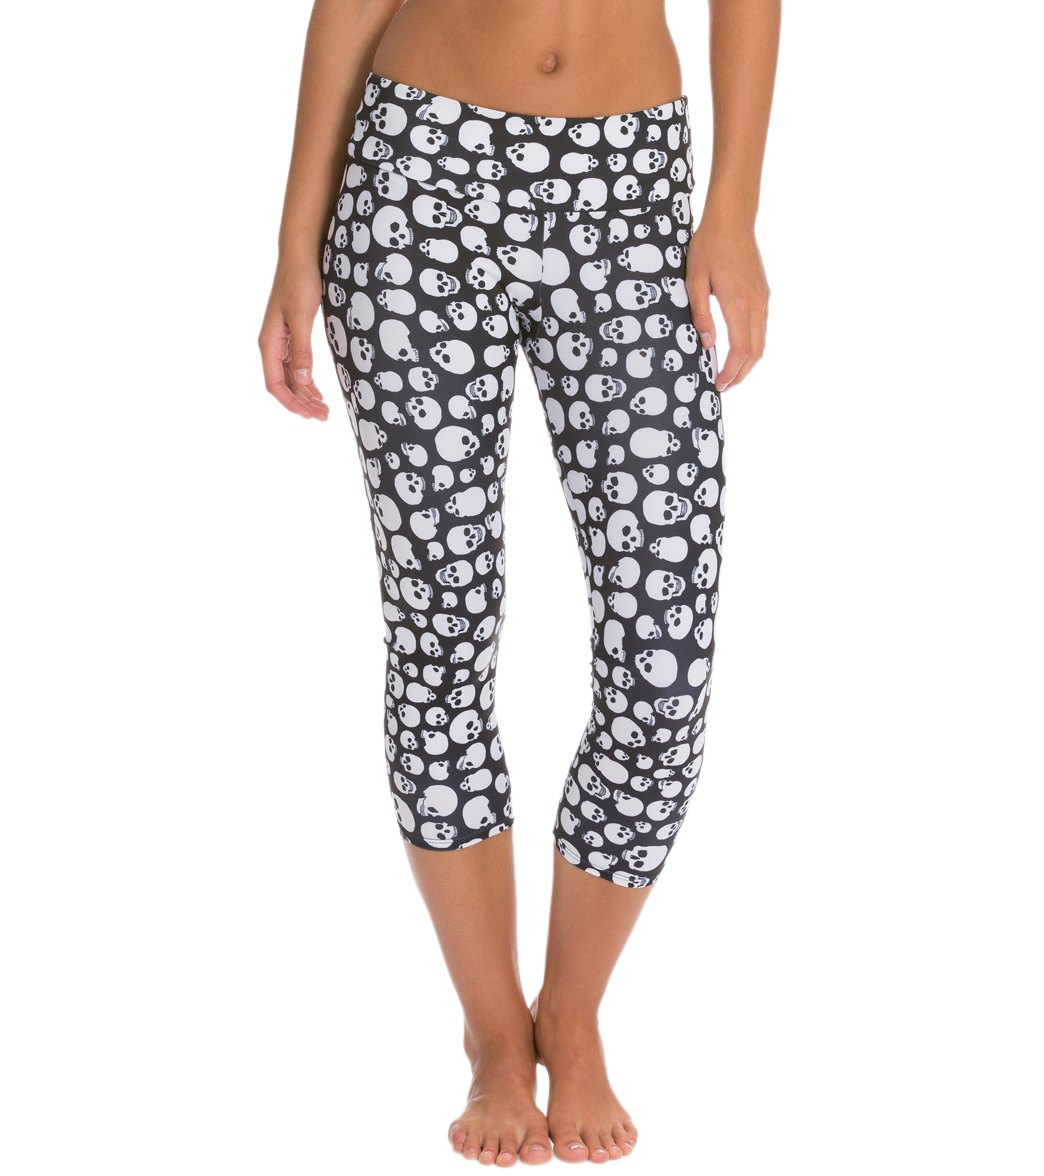 Onzie Yoga Capri Leggings at YogaOutlet.com